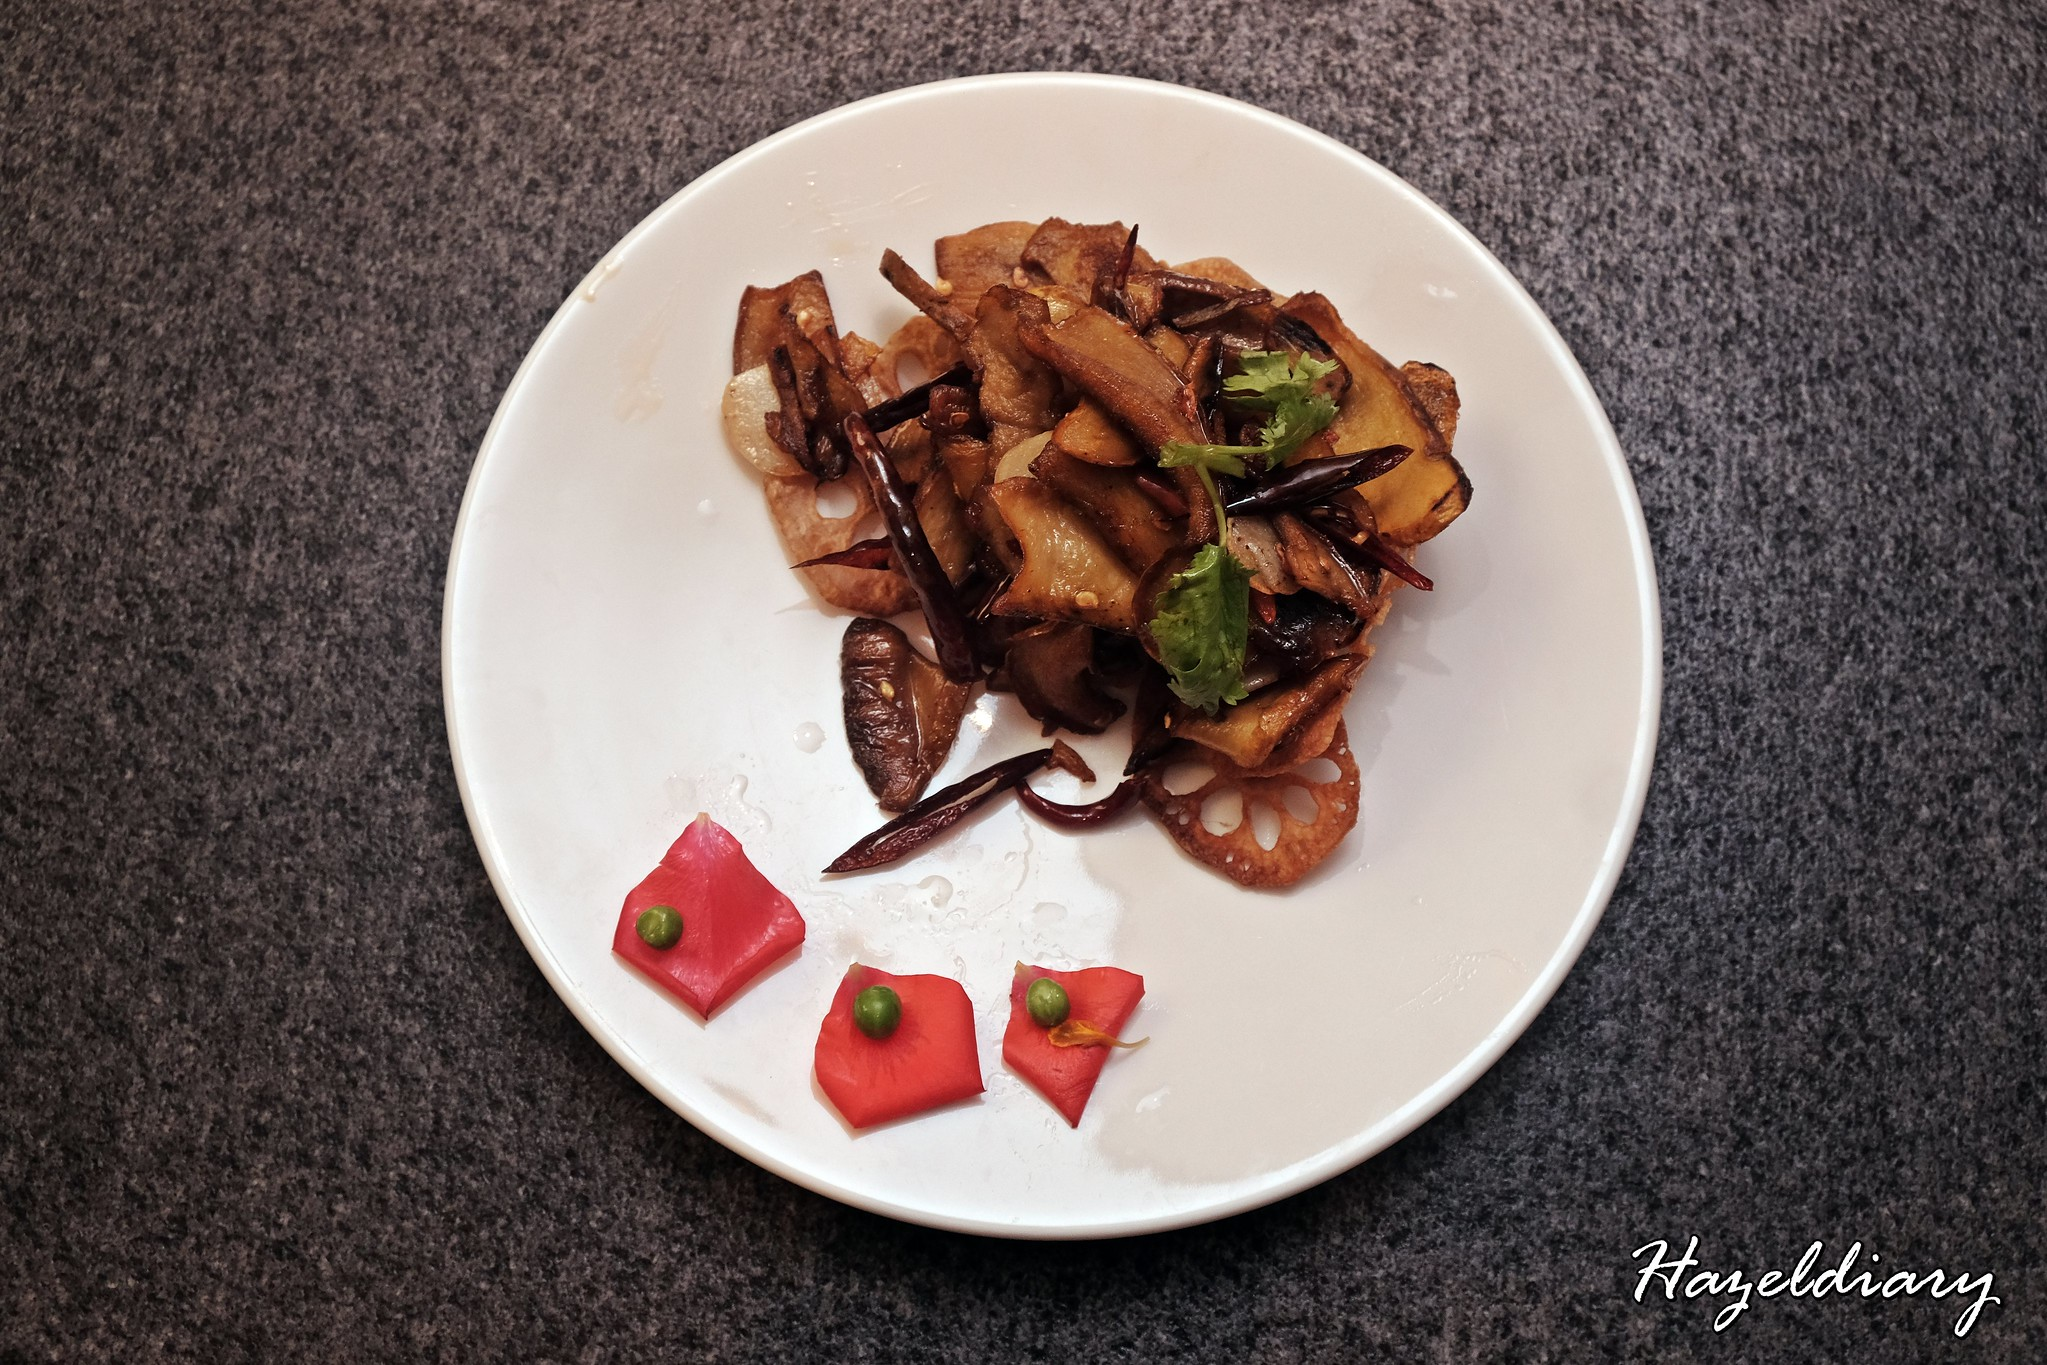 Yun Nans Jewel Changi Airport-Stir-fried Wild Porcini with Dried Chillies